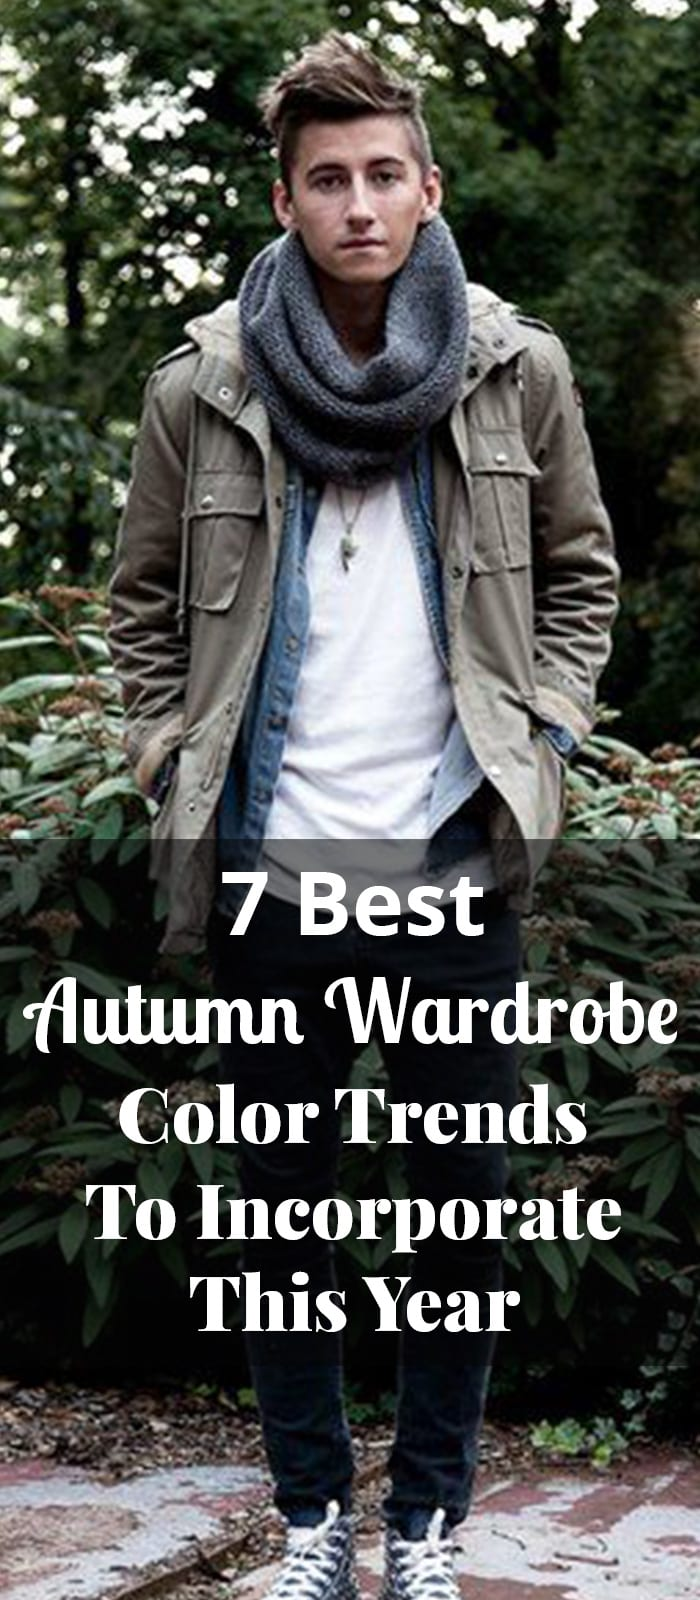 7 Best Autumn Wardrobe Color Trends To Incorporate This Year